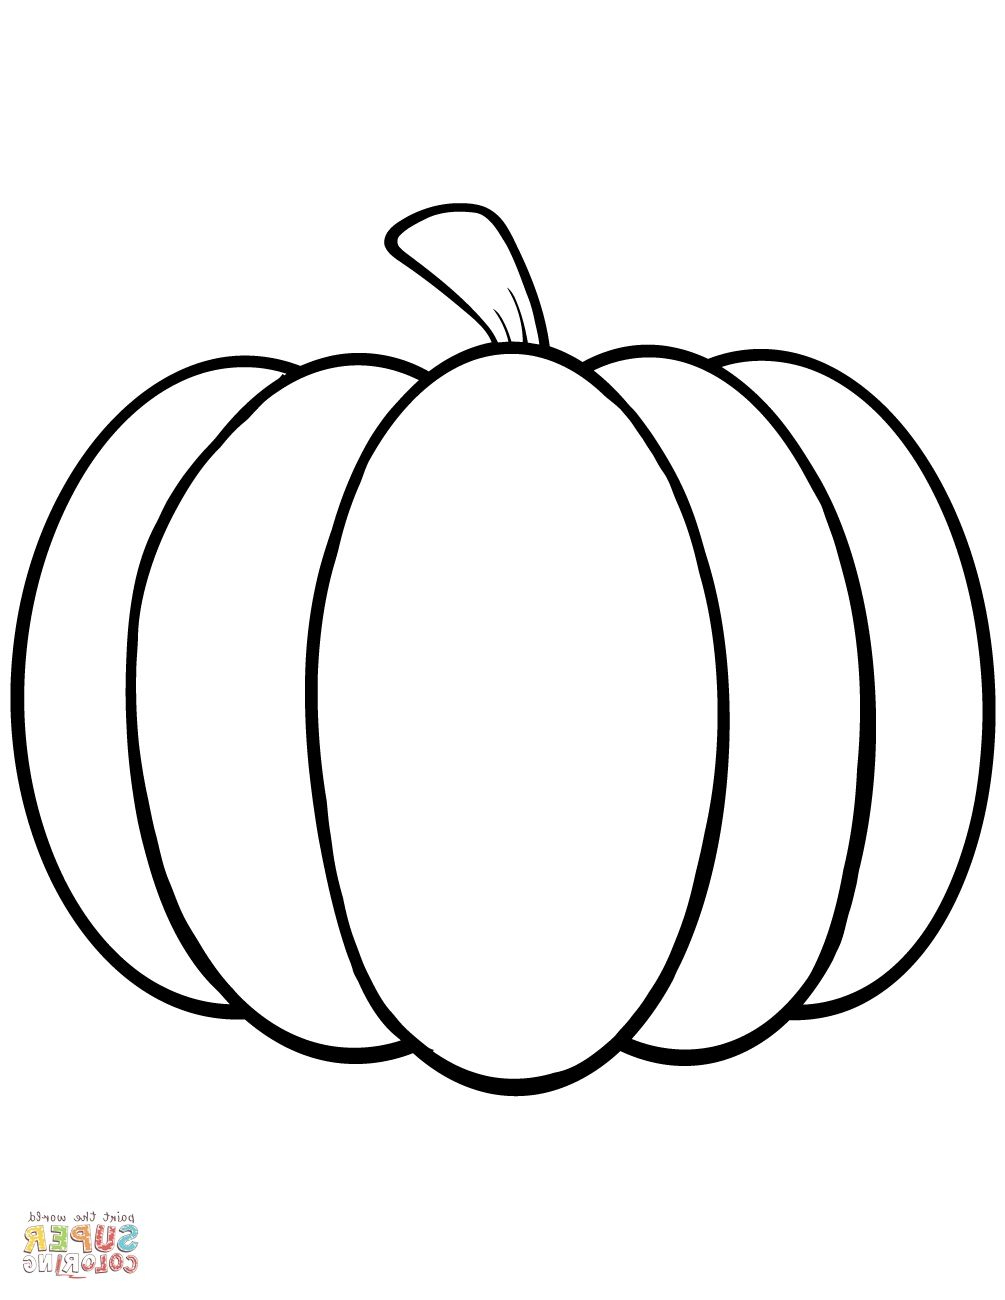 Pumpkin Coloring Pages | Coloring Page | Pinterest | Pumpkin - Free Printable Pumpkin Coloring Pages